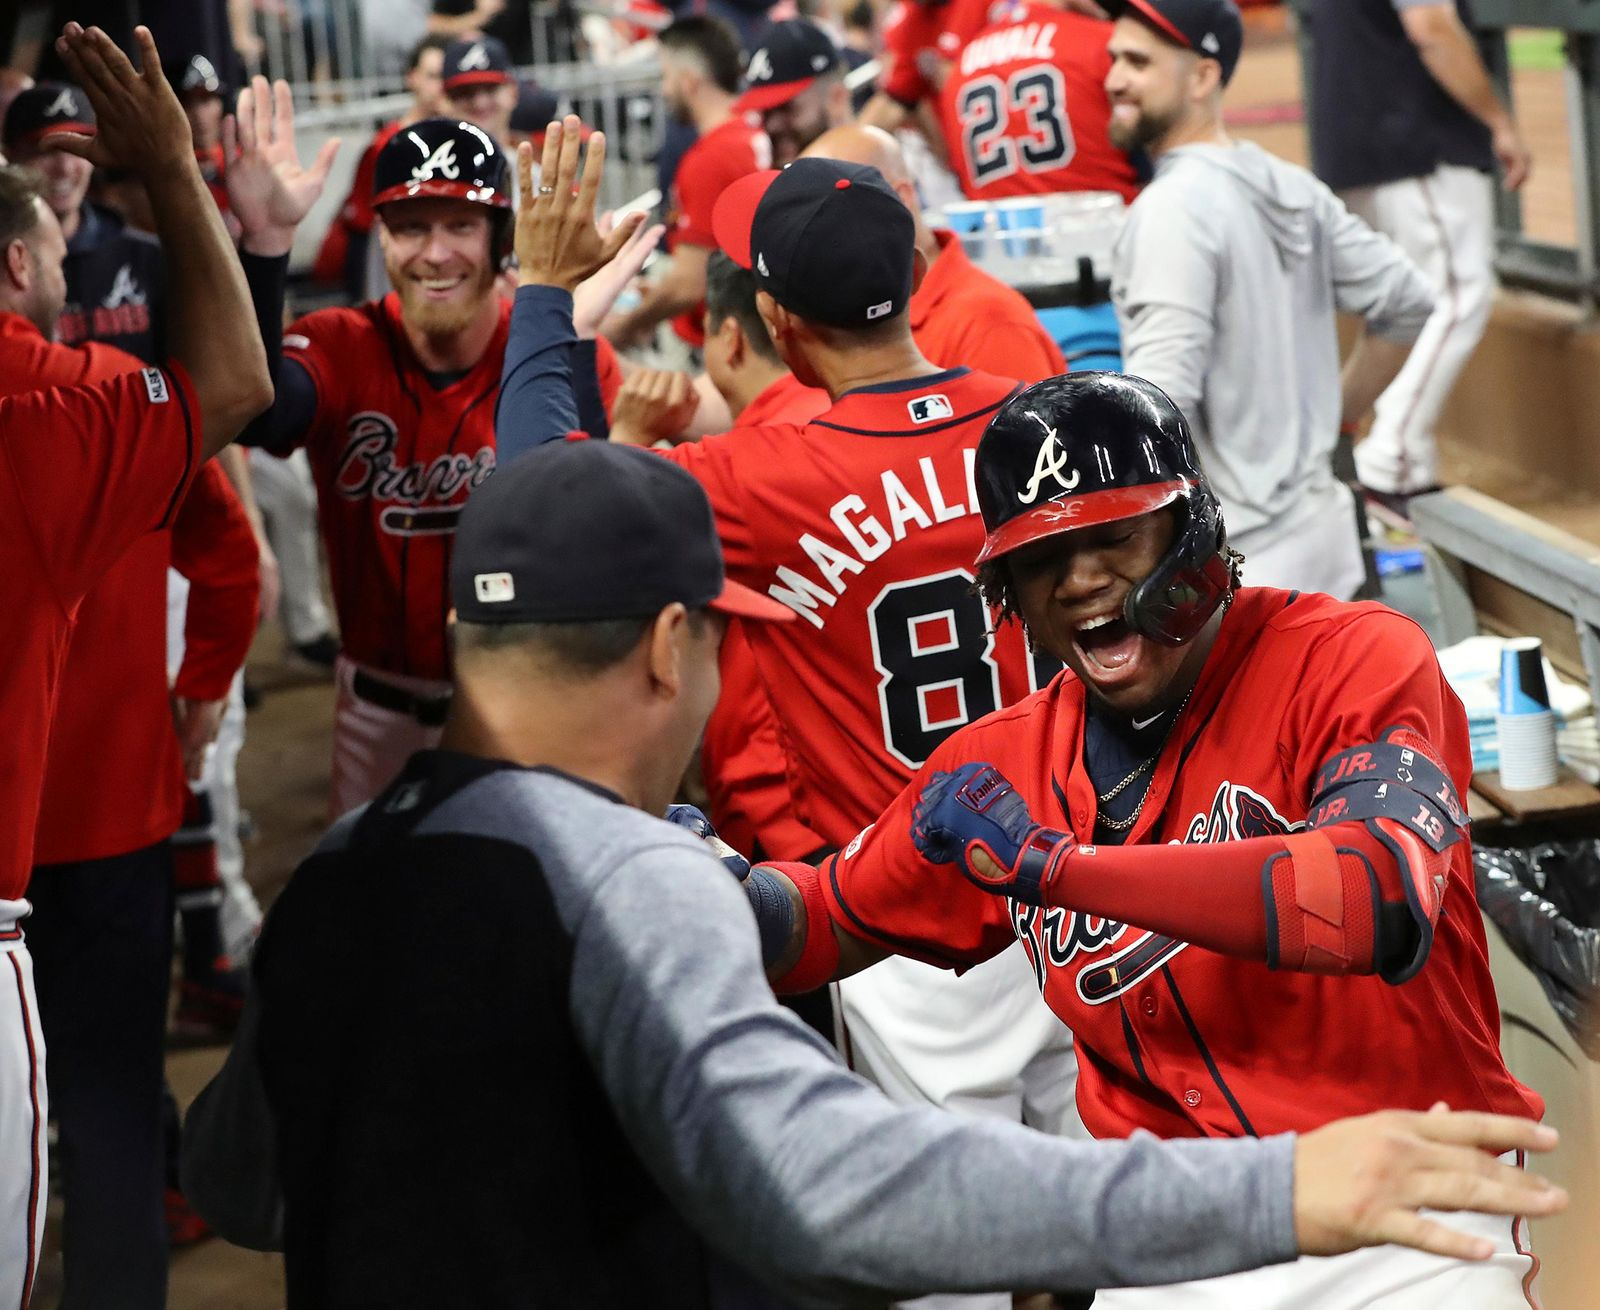 Atlanta Braves Ronald Acuna Jr., right, reacts after hitting a two-RBI home run to score Mike Foltynewicz, left, against the San Francisco Giants during the fifth inning in a baseball game on Friday, Sept. 20, 2019, in Atlanta. (Curtis Compton/Atlanta Journal-Constitution via AP)